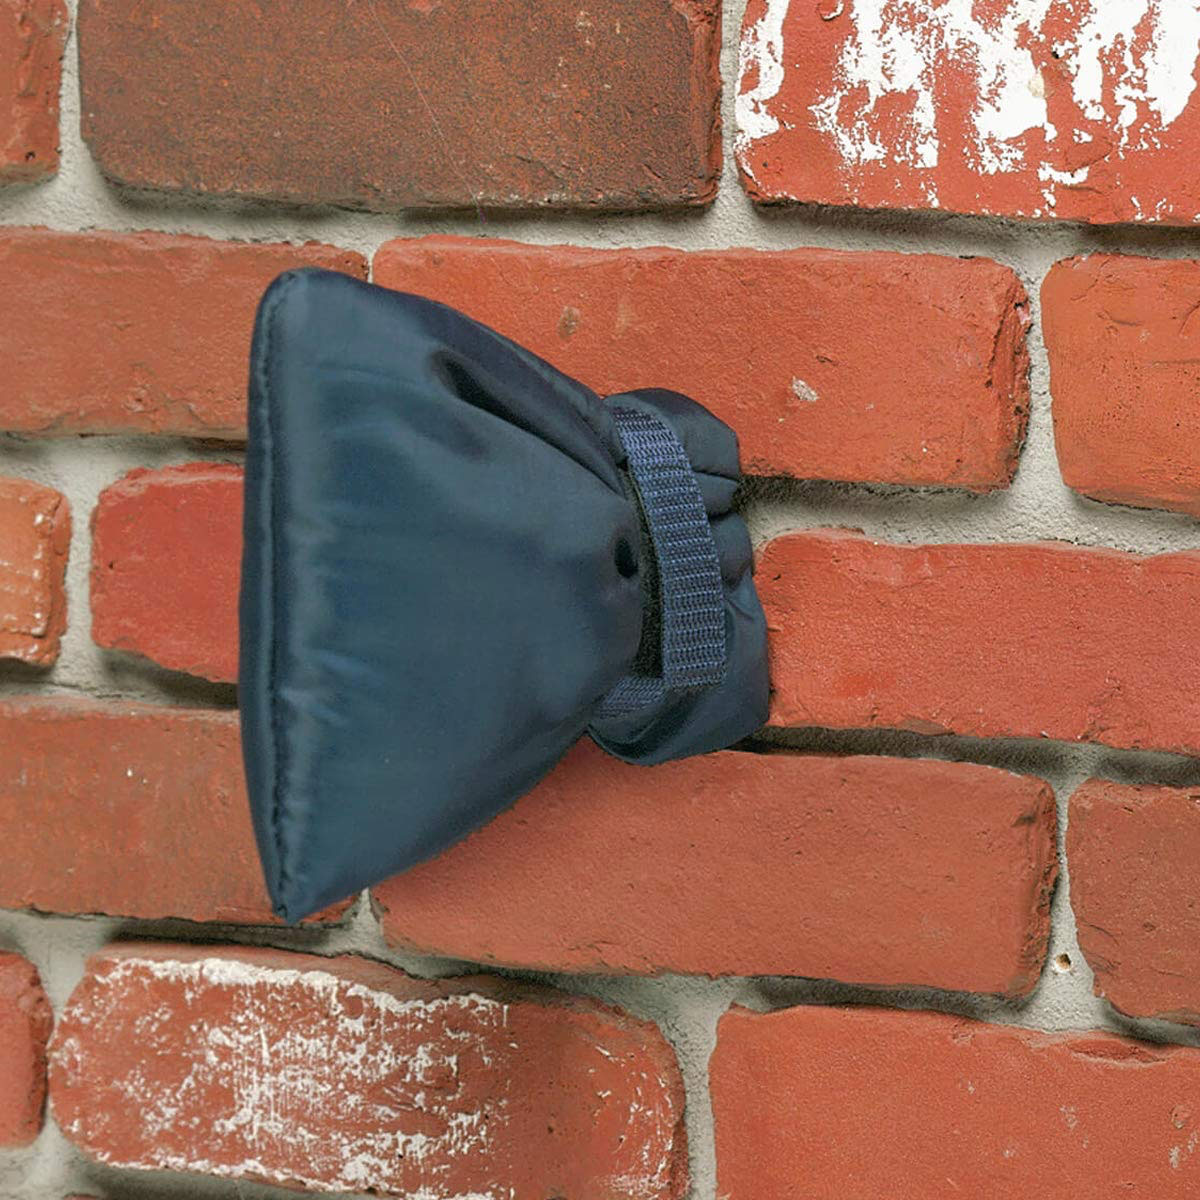 Insulated Outdoor Faucet Cover - Prevents Frozen Pipes! - The Green Head